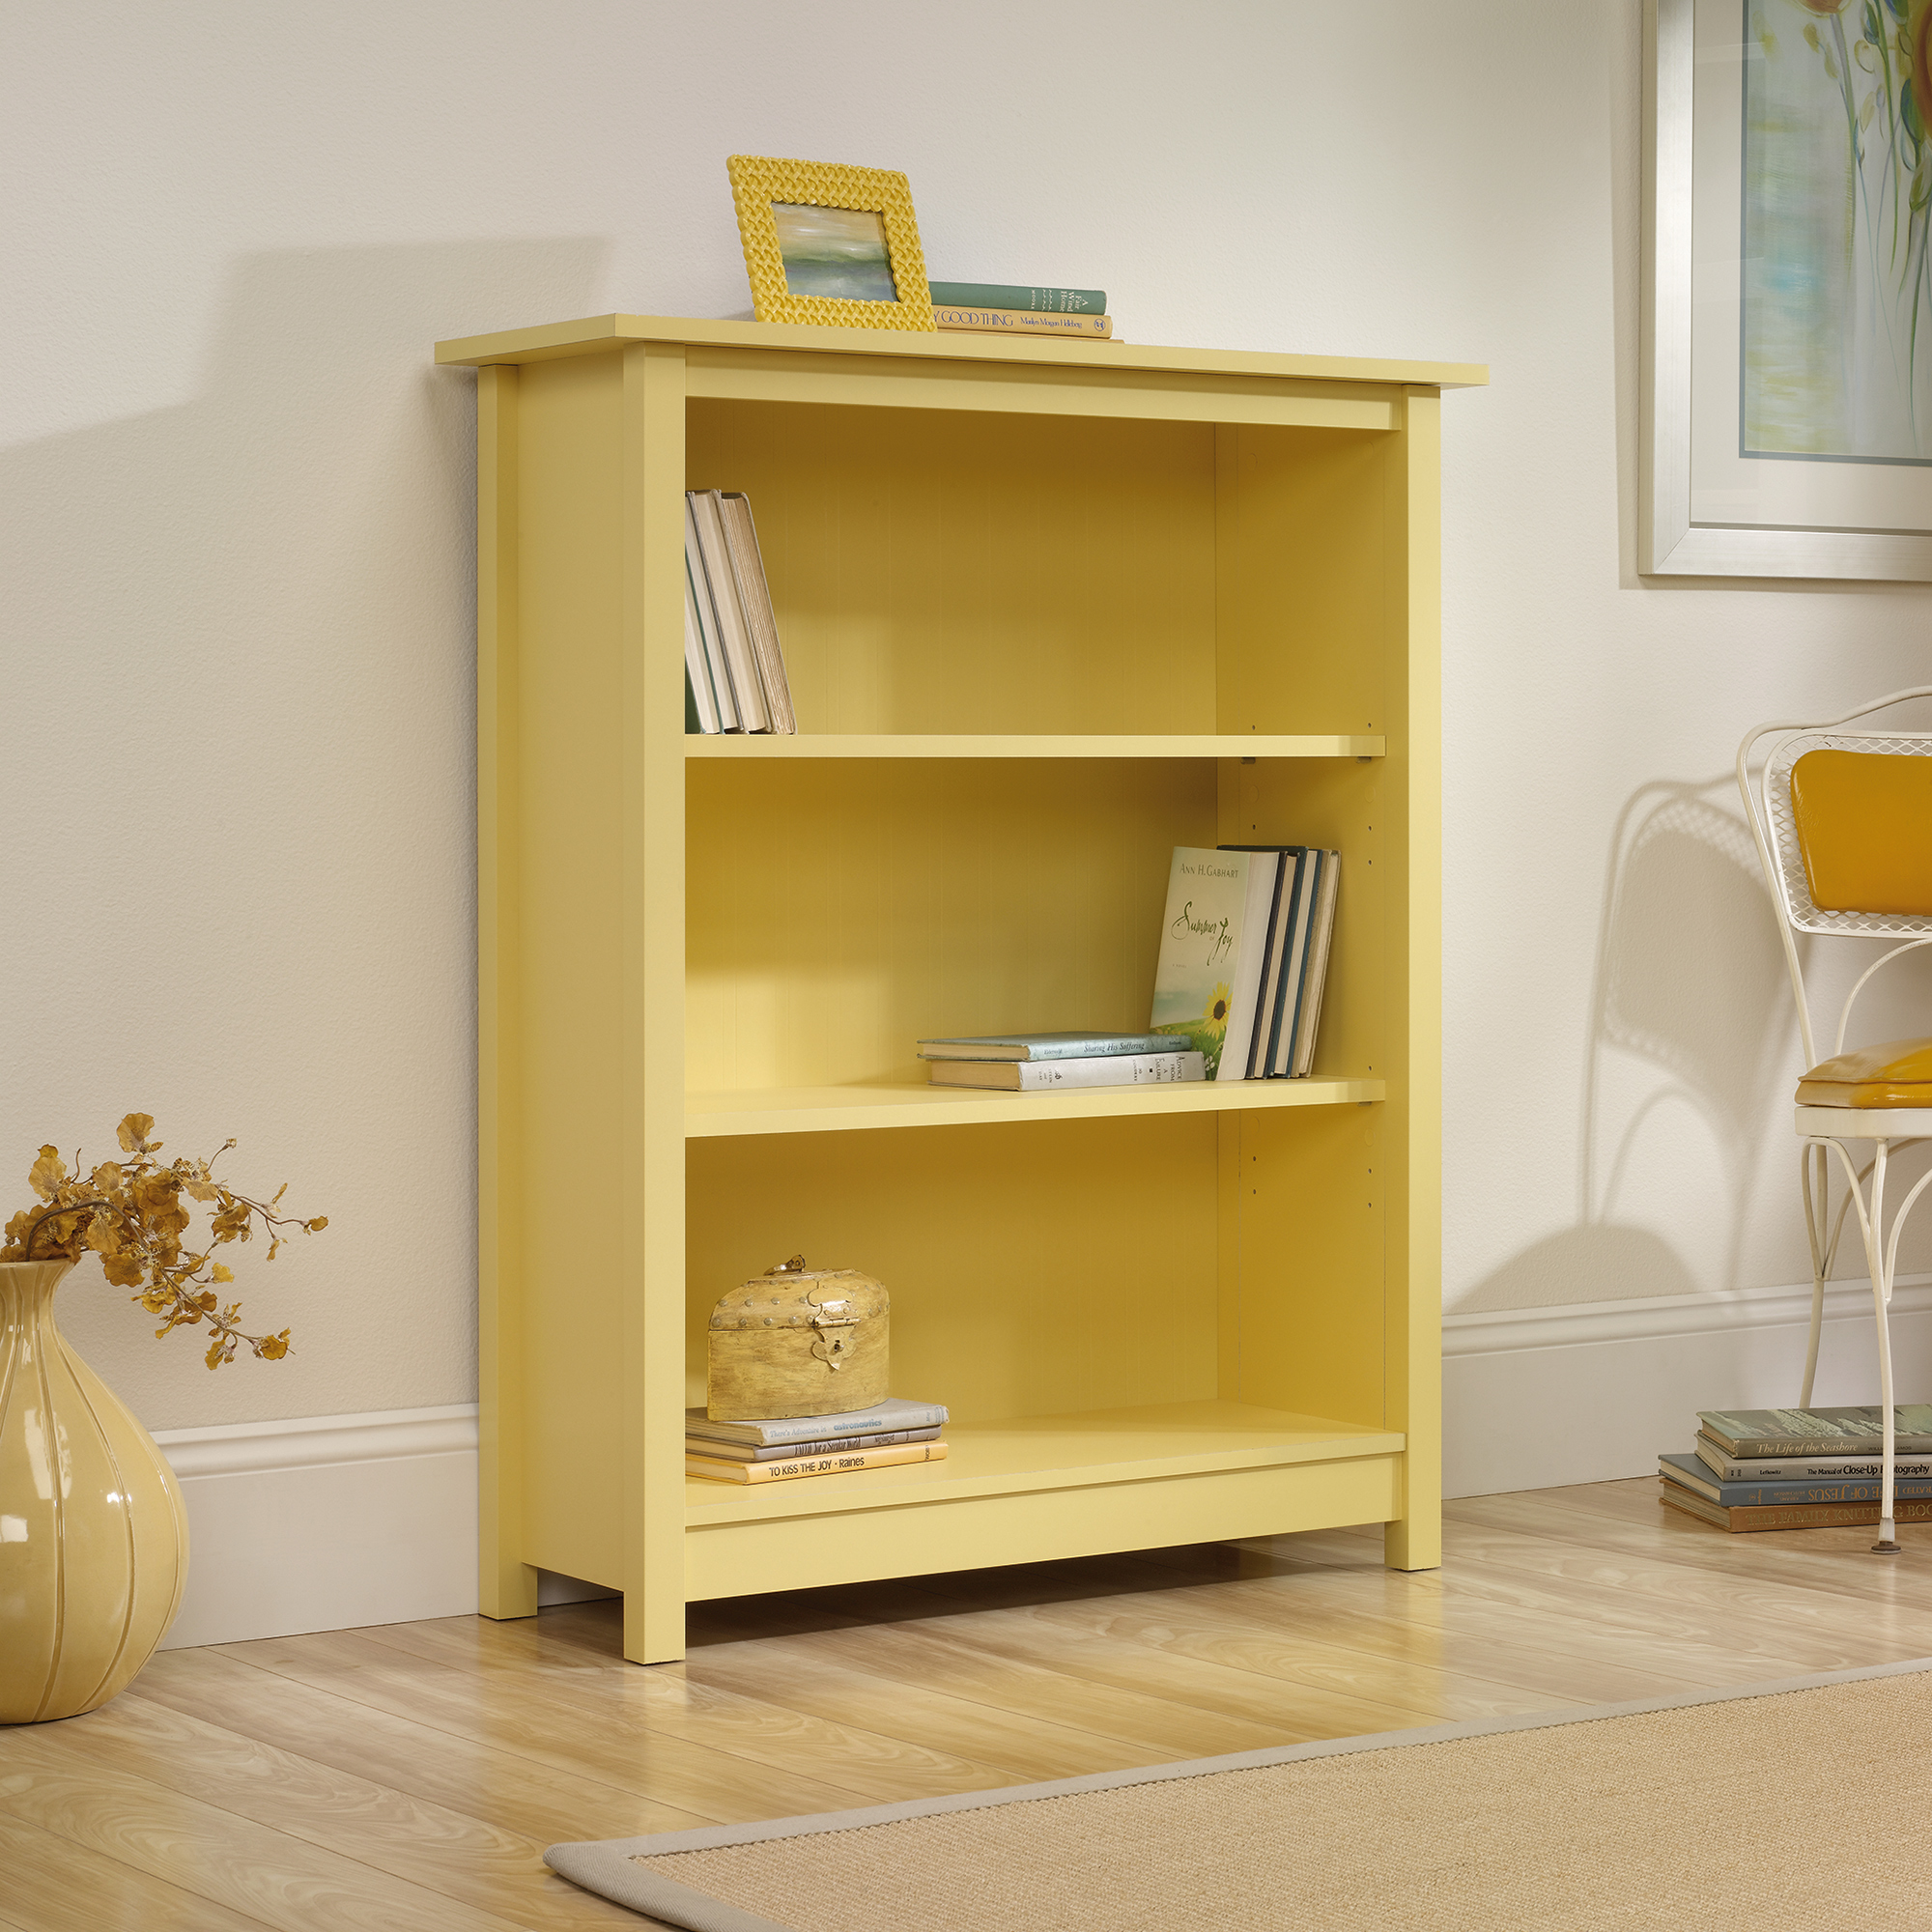 fascinating yellow simple sauder bookcases and flower vas and porcelain floor